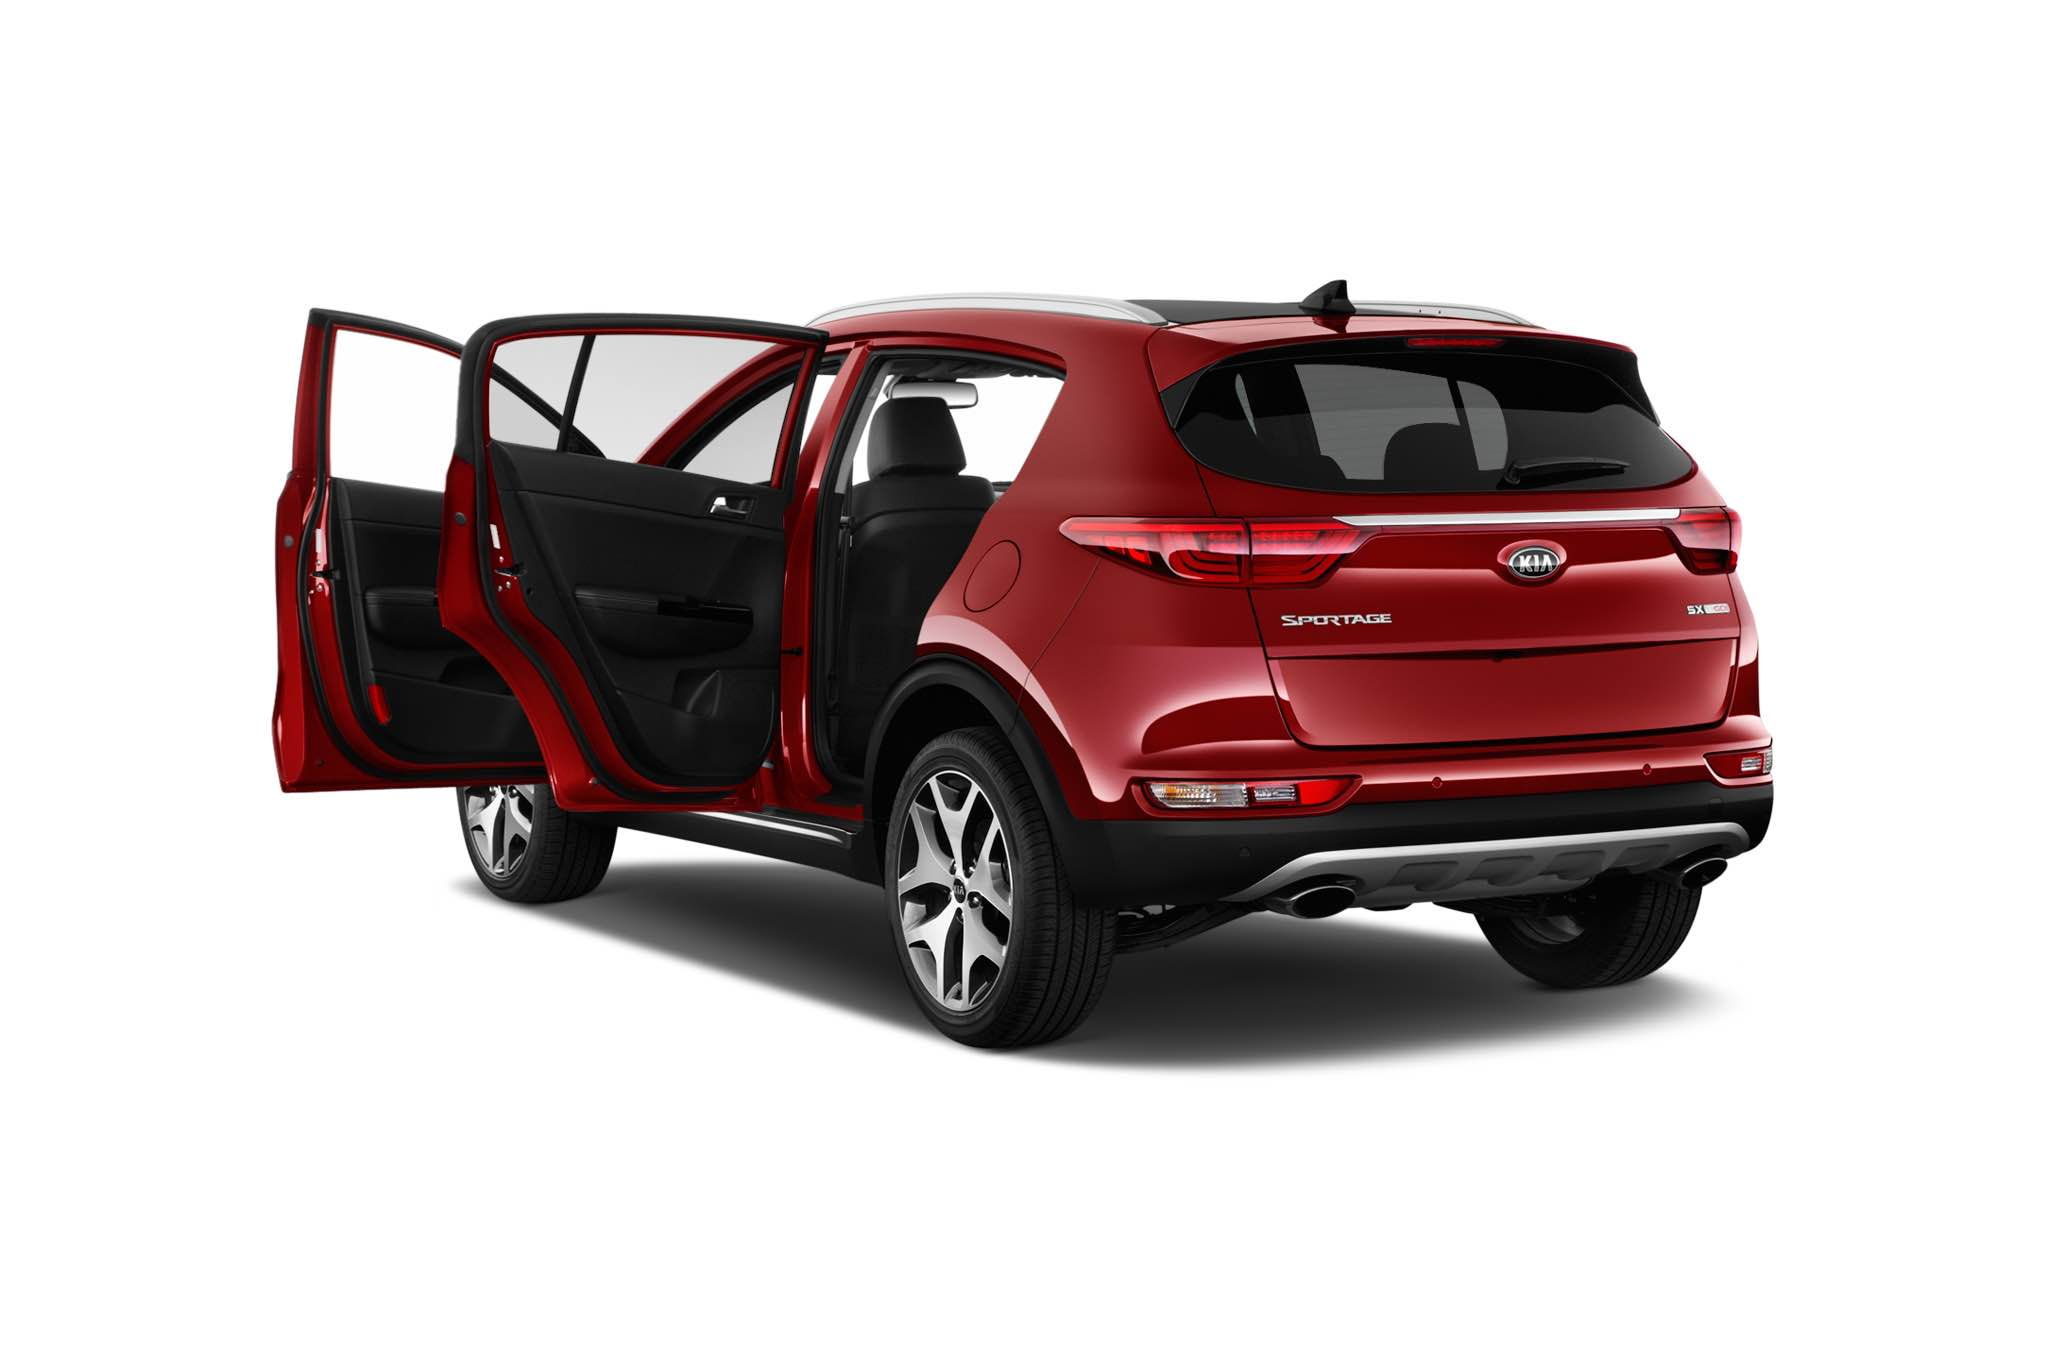 prix kia sportage 2 l diesel gt line a partir de 142 480 dt. Black Bedroom Furniture Sets. Home Design Ideas